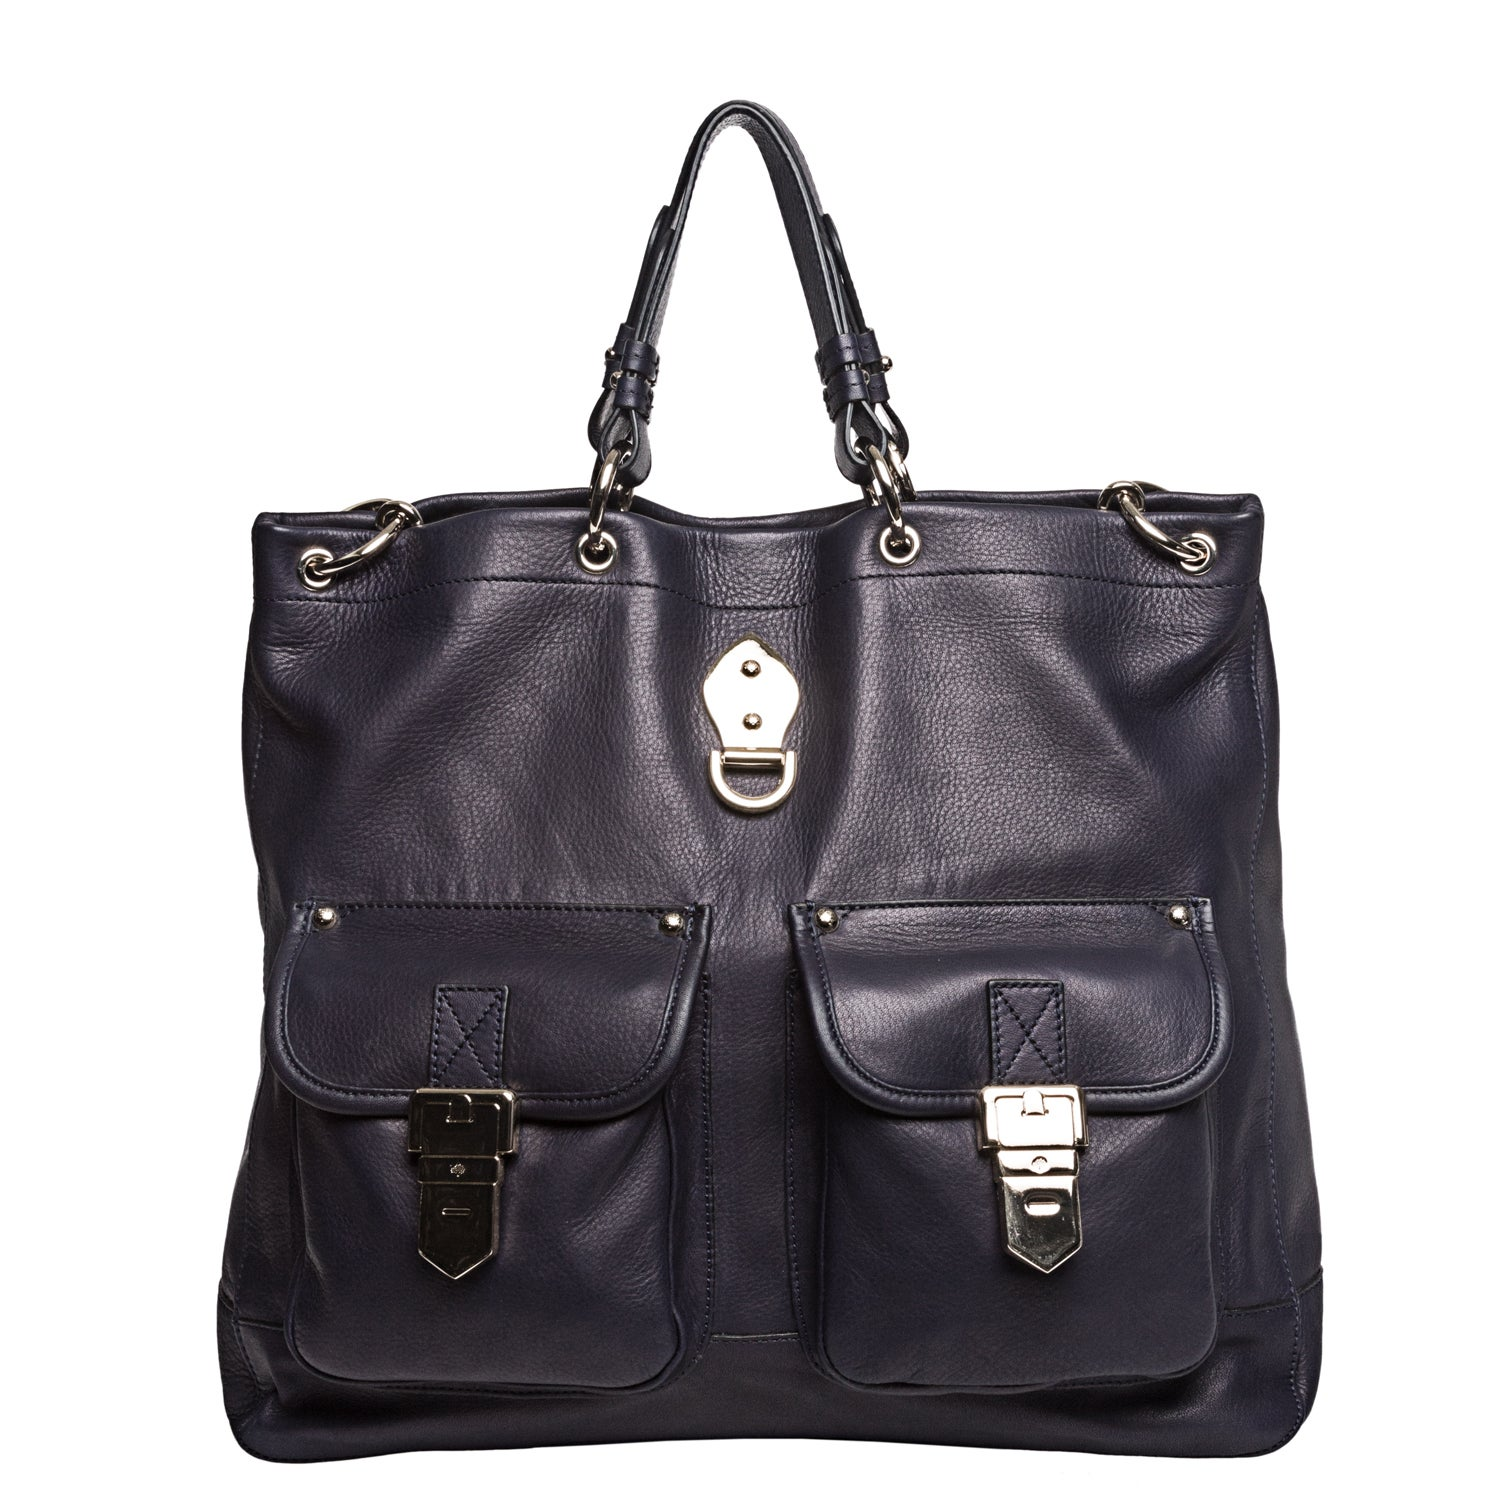 clearance mulberry bayswater quilted small shoulder bag a15ae bcfee  uk  mulberry tillie navy leather tote bag e78fc 04e0f 0a5879bca18fd